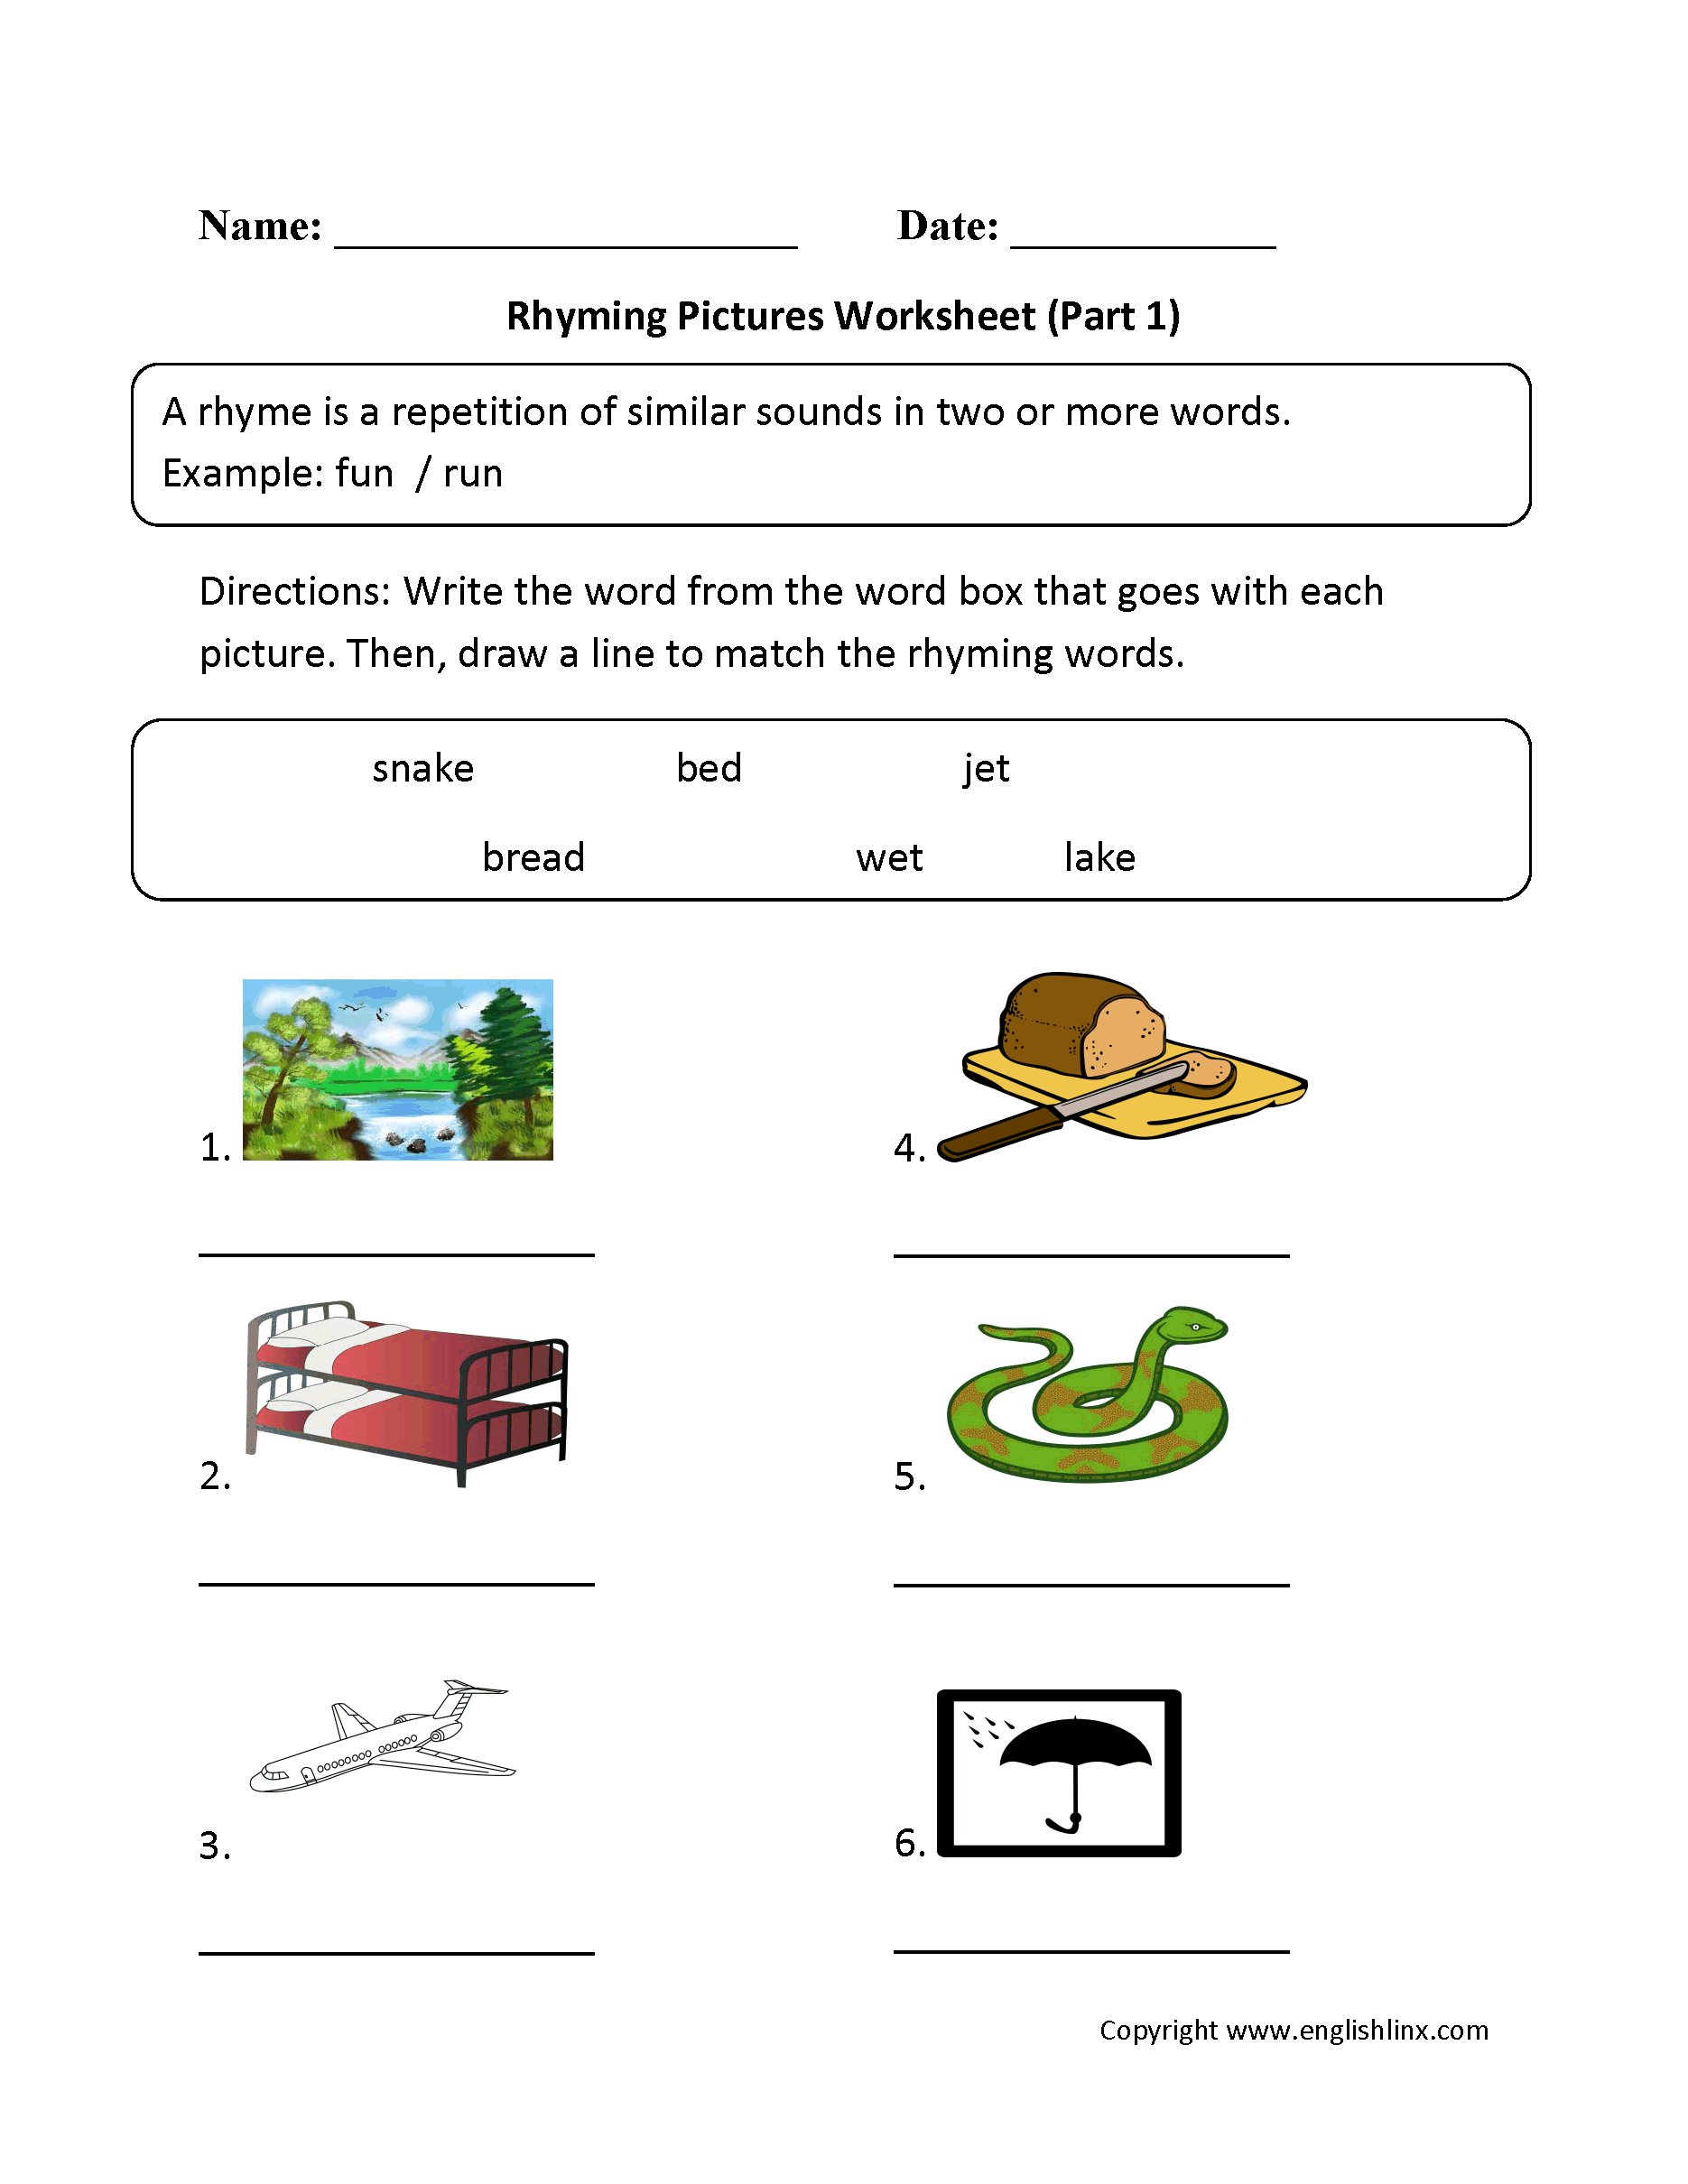 Free Worksheet Free Rhyming Worksheets englishlinx com rhyming worksheets pictures worksheets